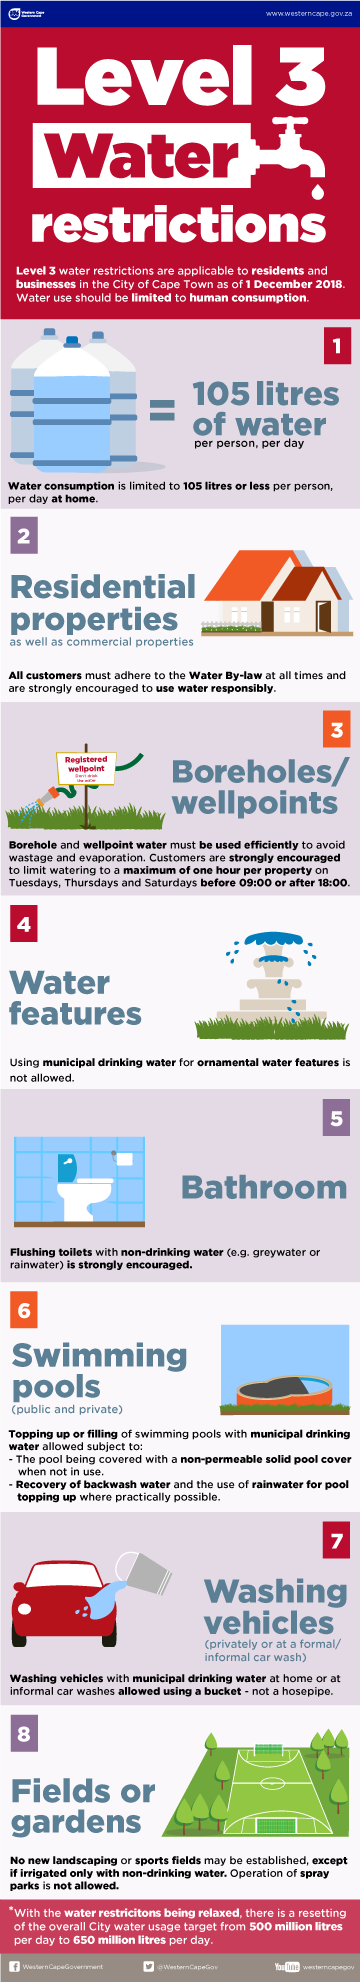 Level 3 water restrictions infographic